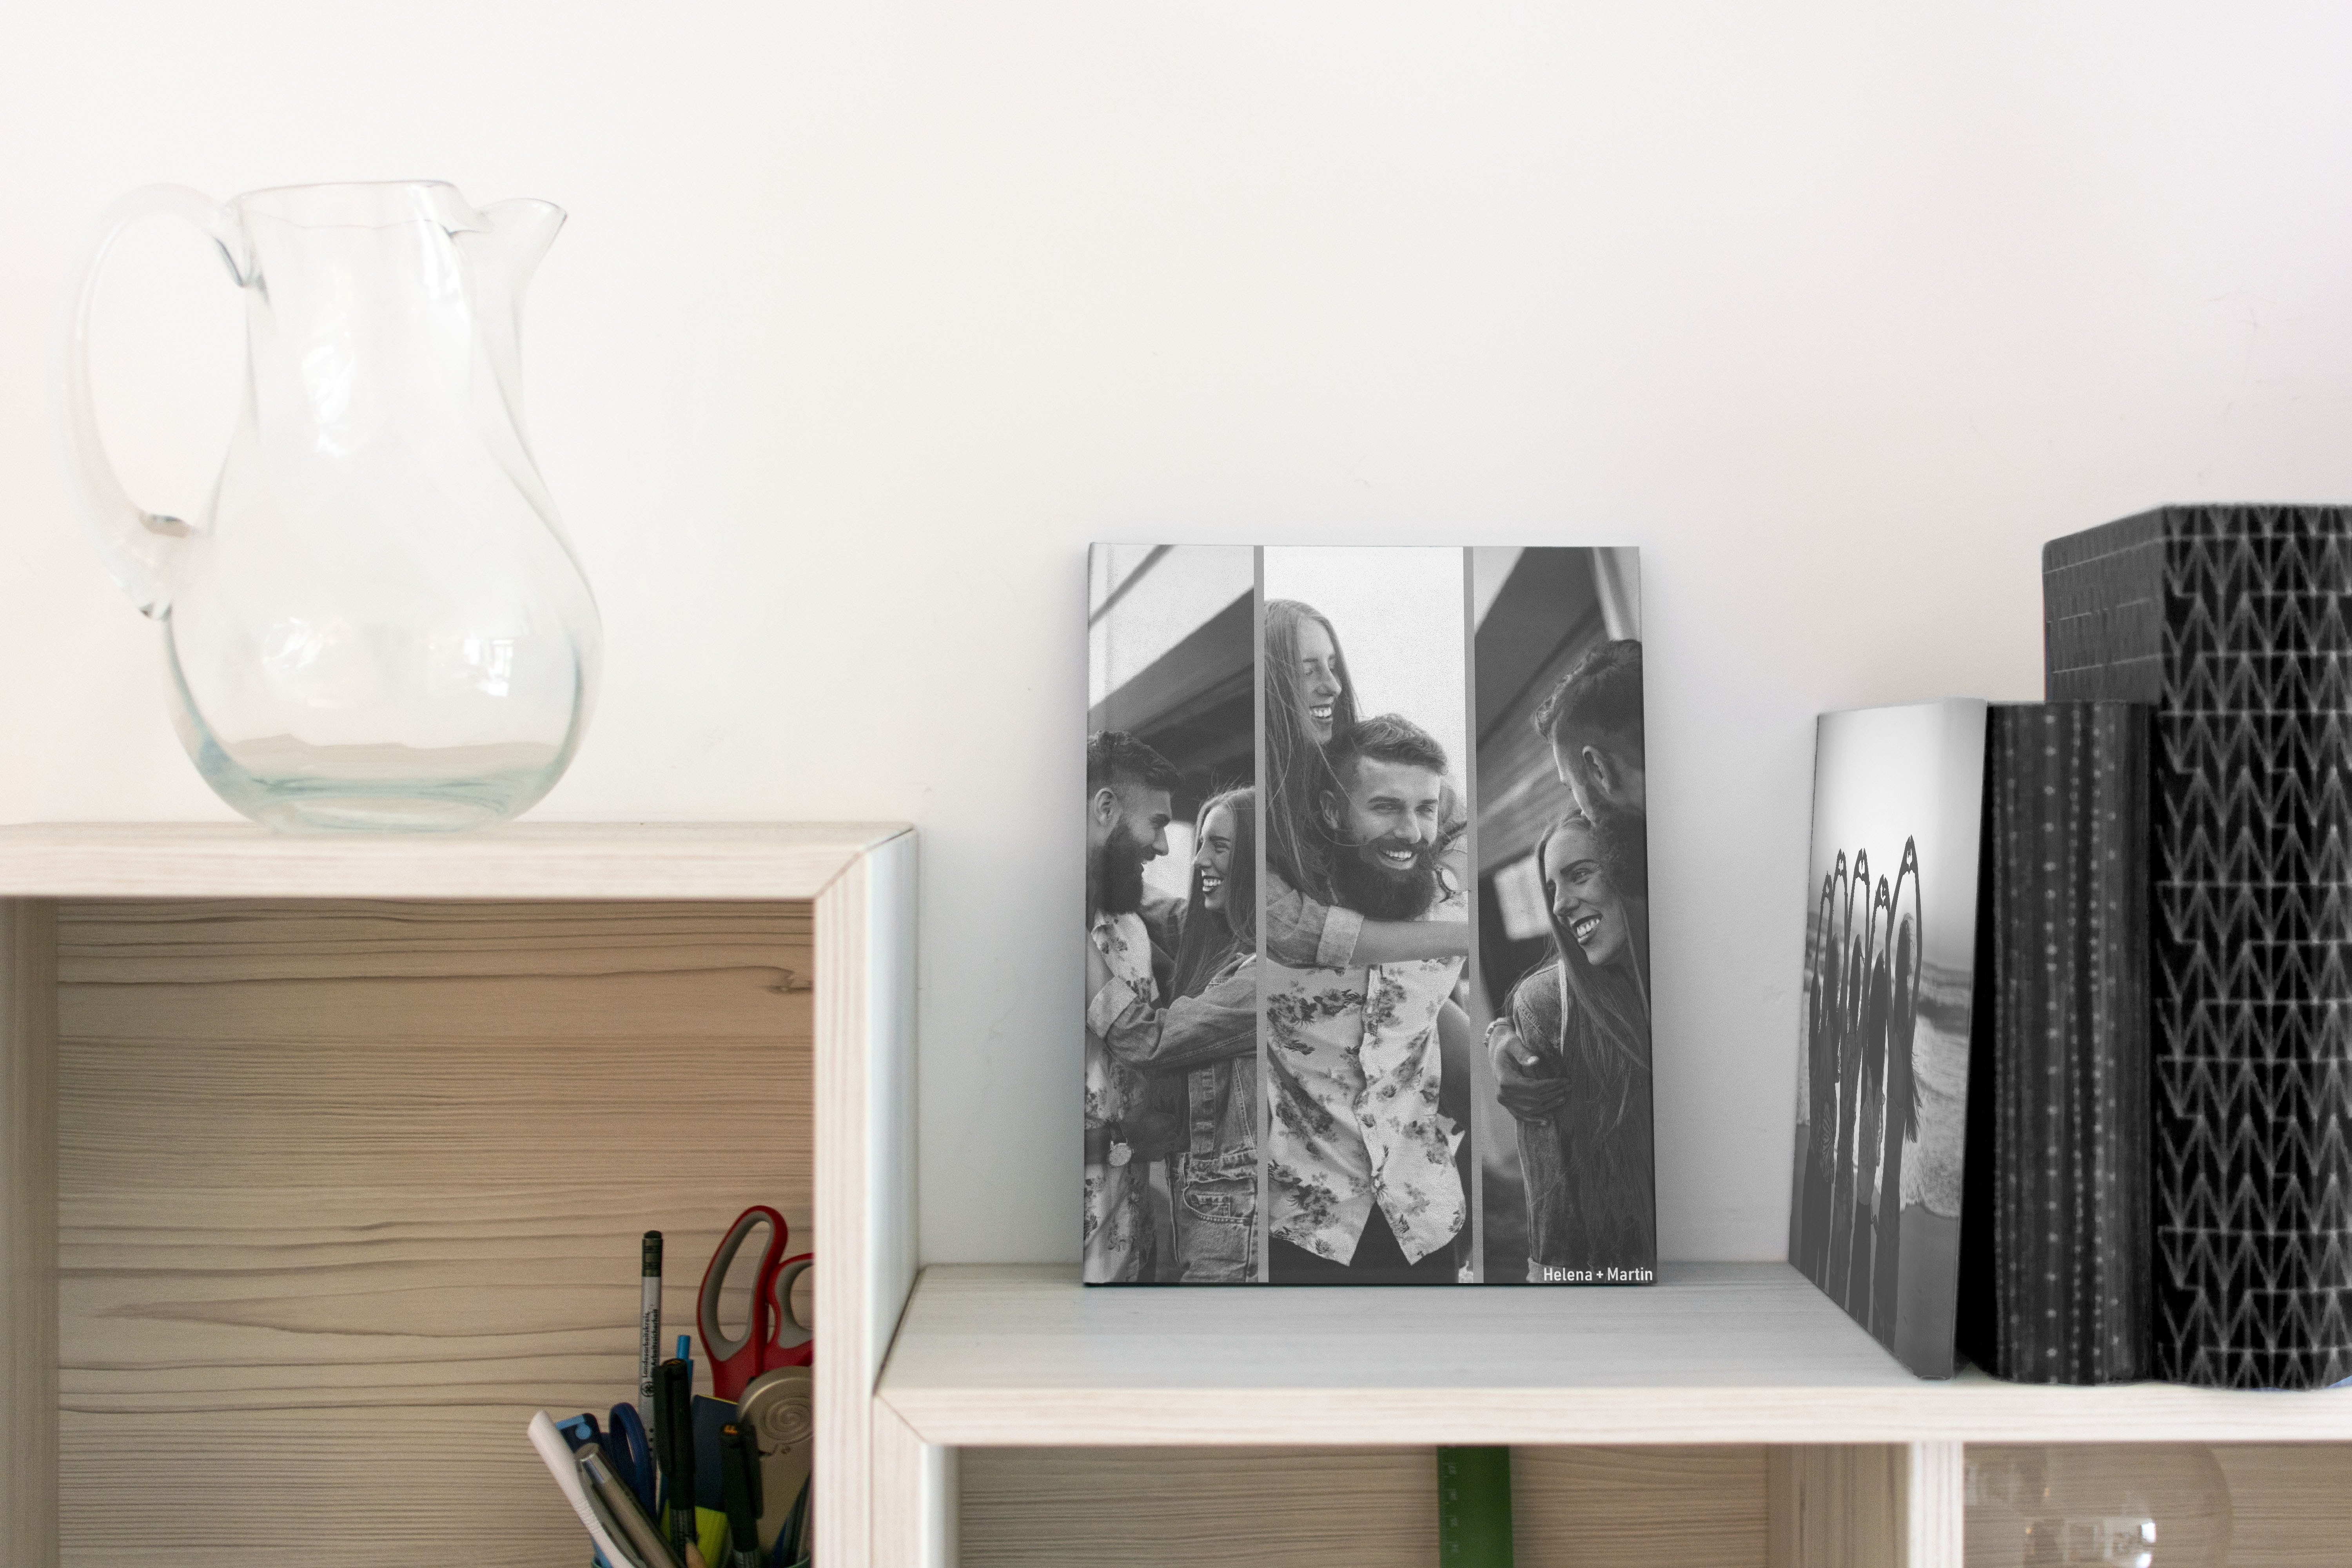 creative-ways-display-photo-books-monochrome